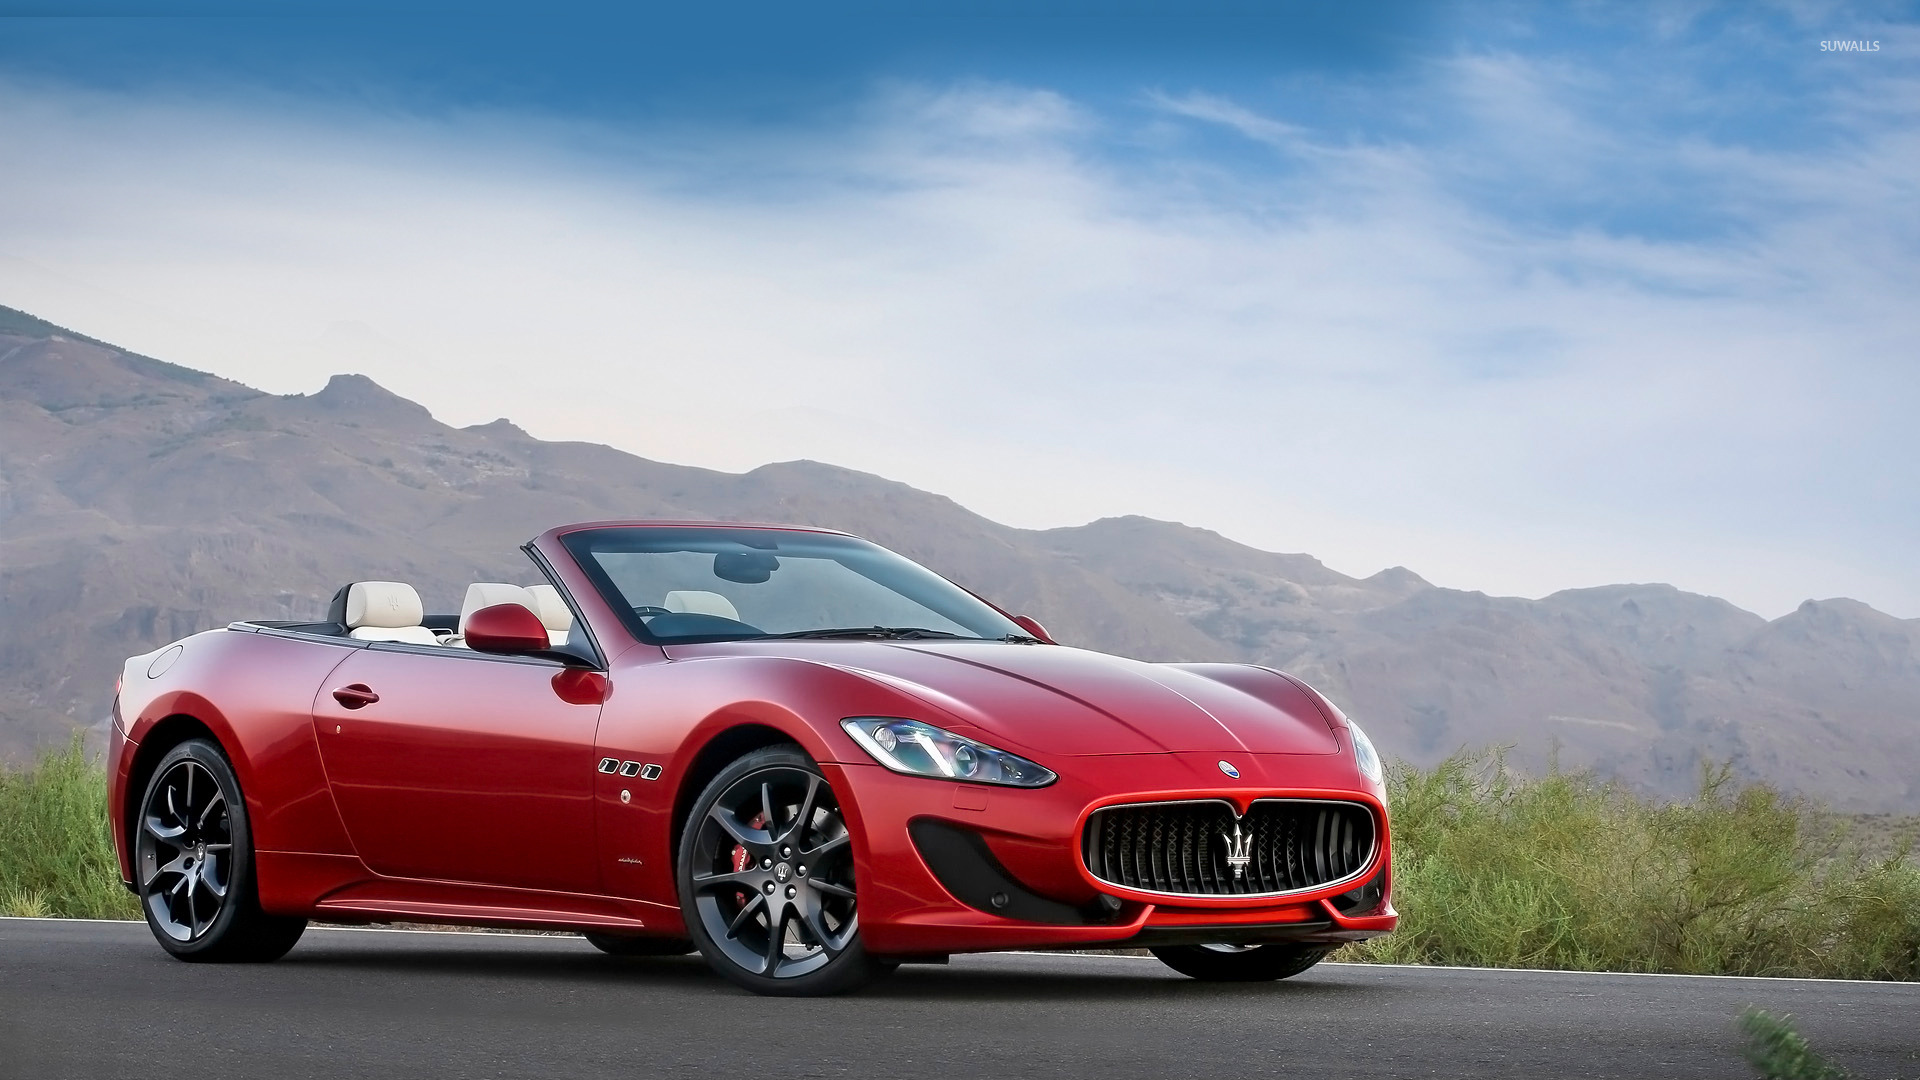 2013 maserati grancabrio sport wallpaper car wallpapers 15332. Black Bedroom Furniture Sets. Home Design Ideas